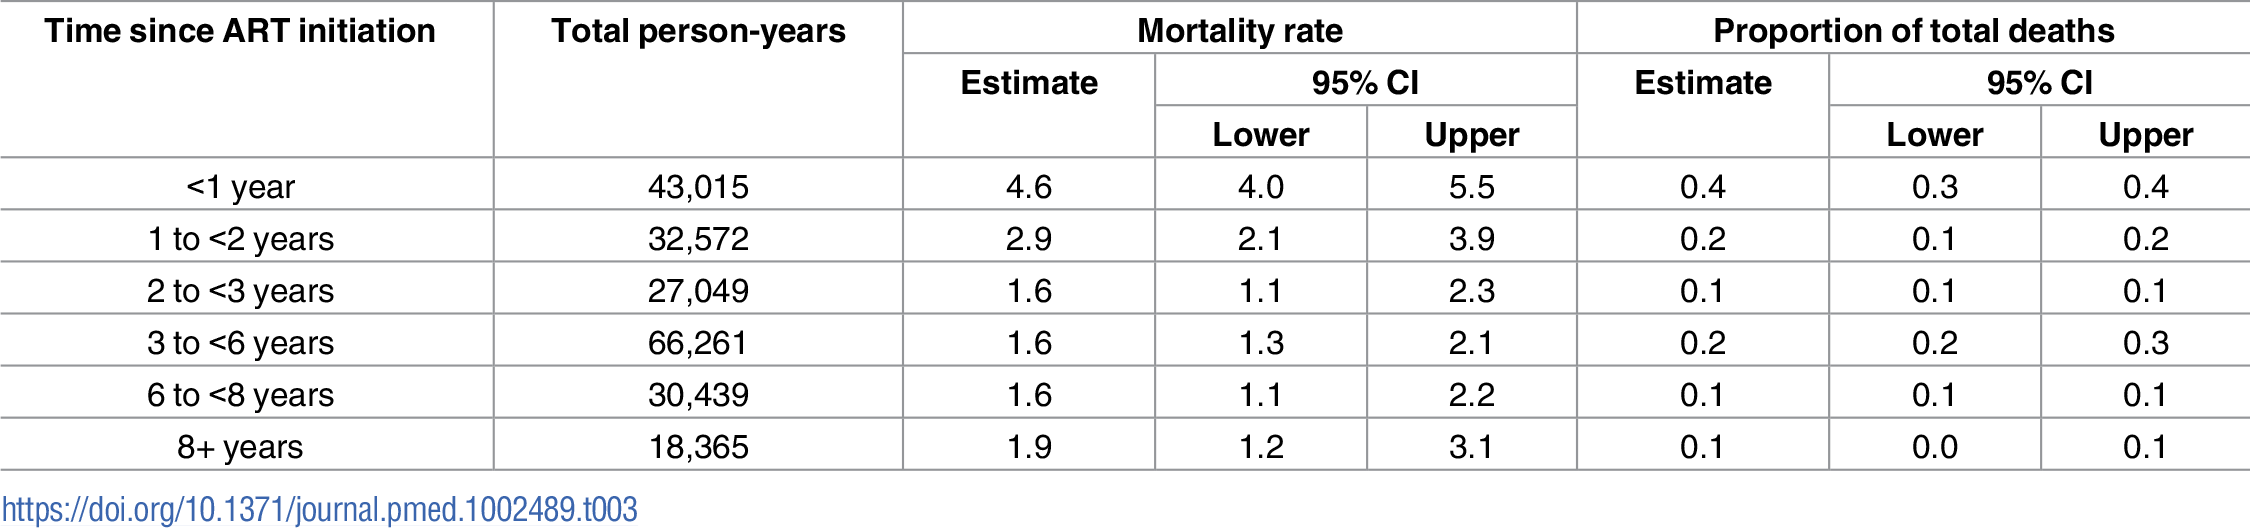 Duration on antiretroviral therapy (ART) and contribution to overall mortality among all ART users.